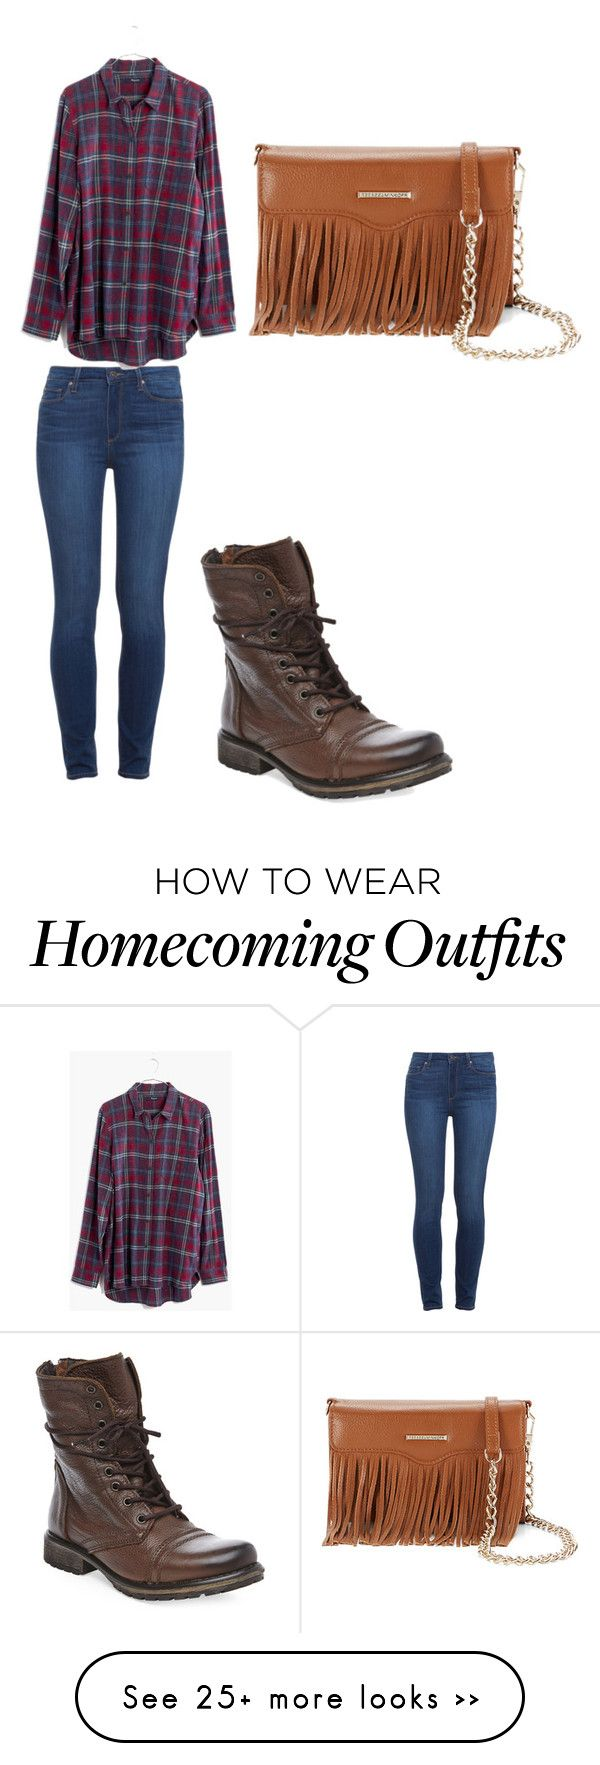 """homecoming week- coumgry vs country club"" by apangburn on Polyvore featuring Paige Denim, Madewell, Steve Madden, Rebecca Minkoff and country"